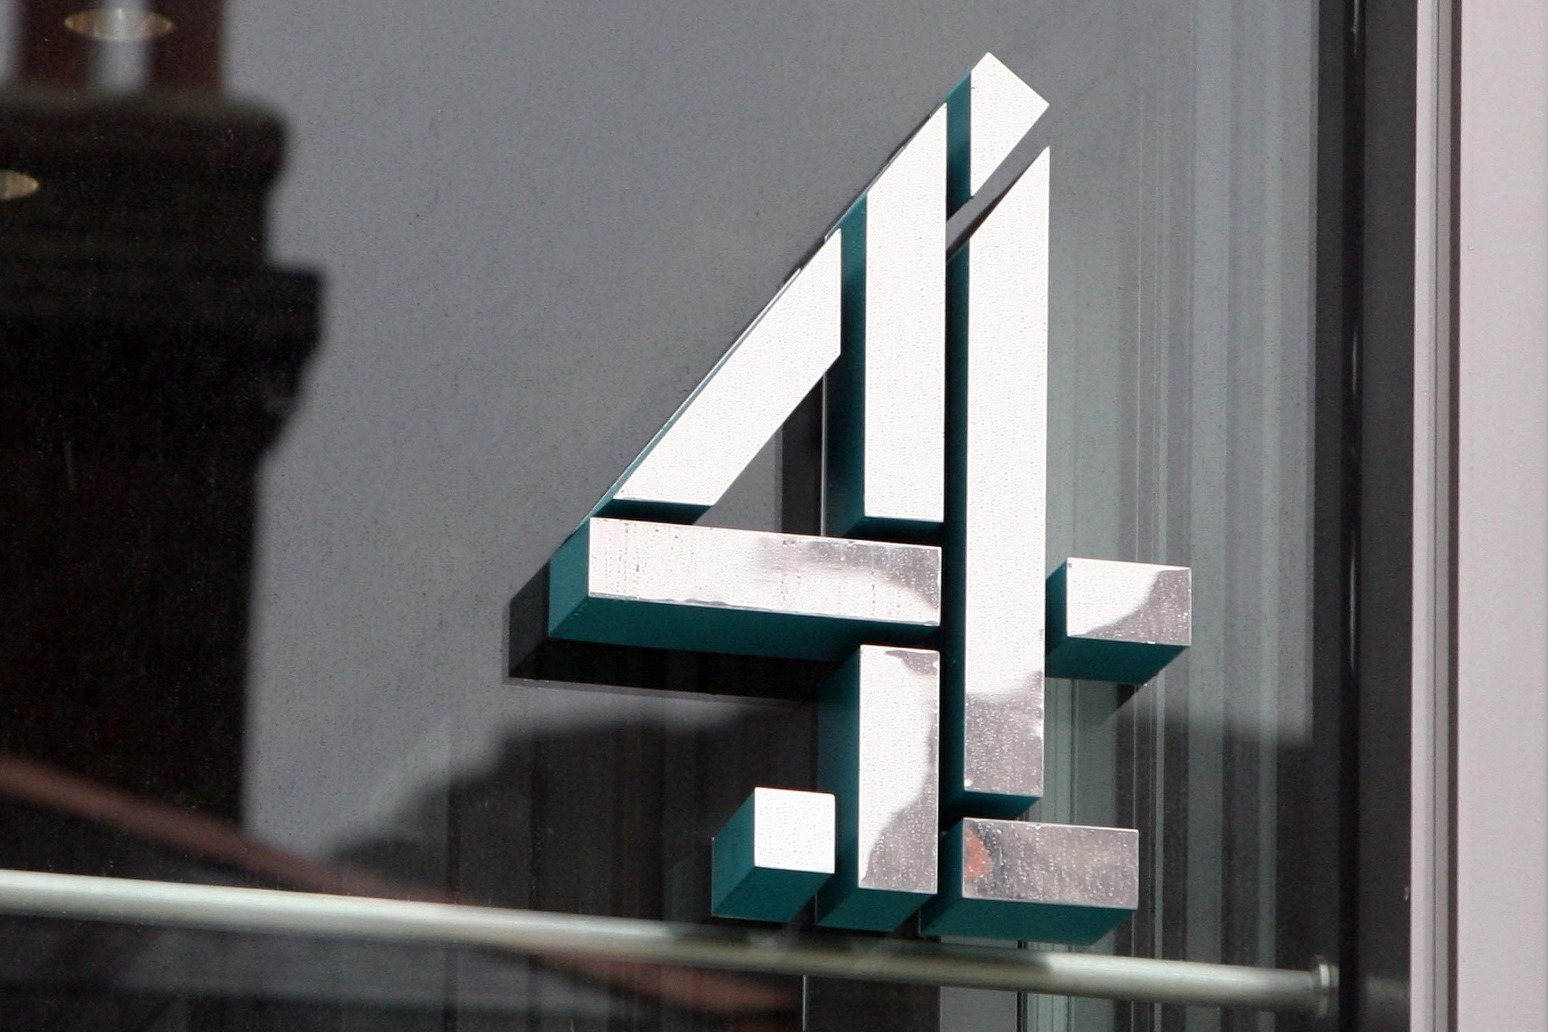 Channel 4 to pay tribute to Sean Lock with special programming